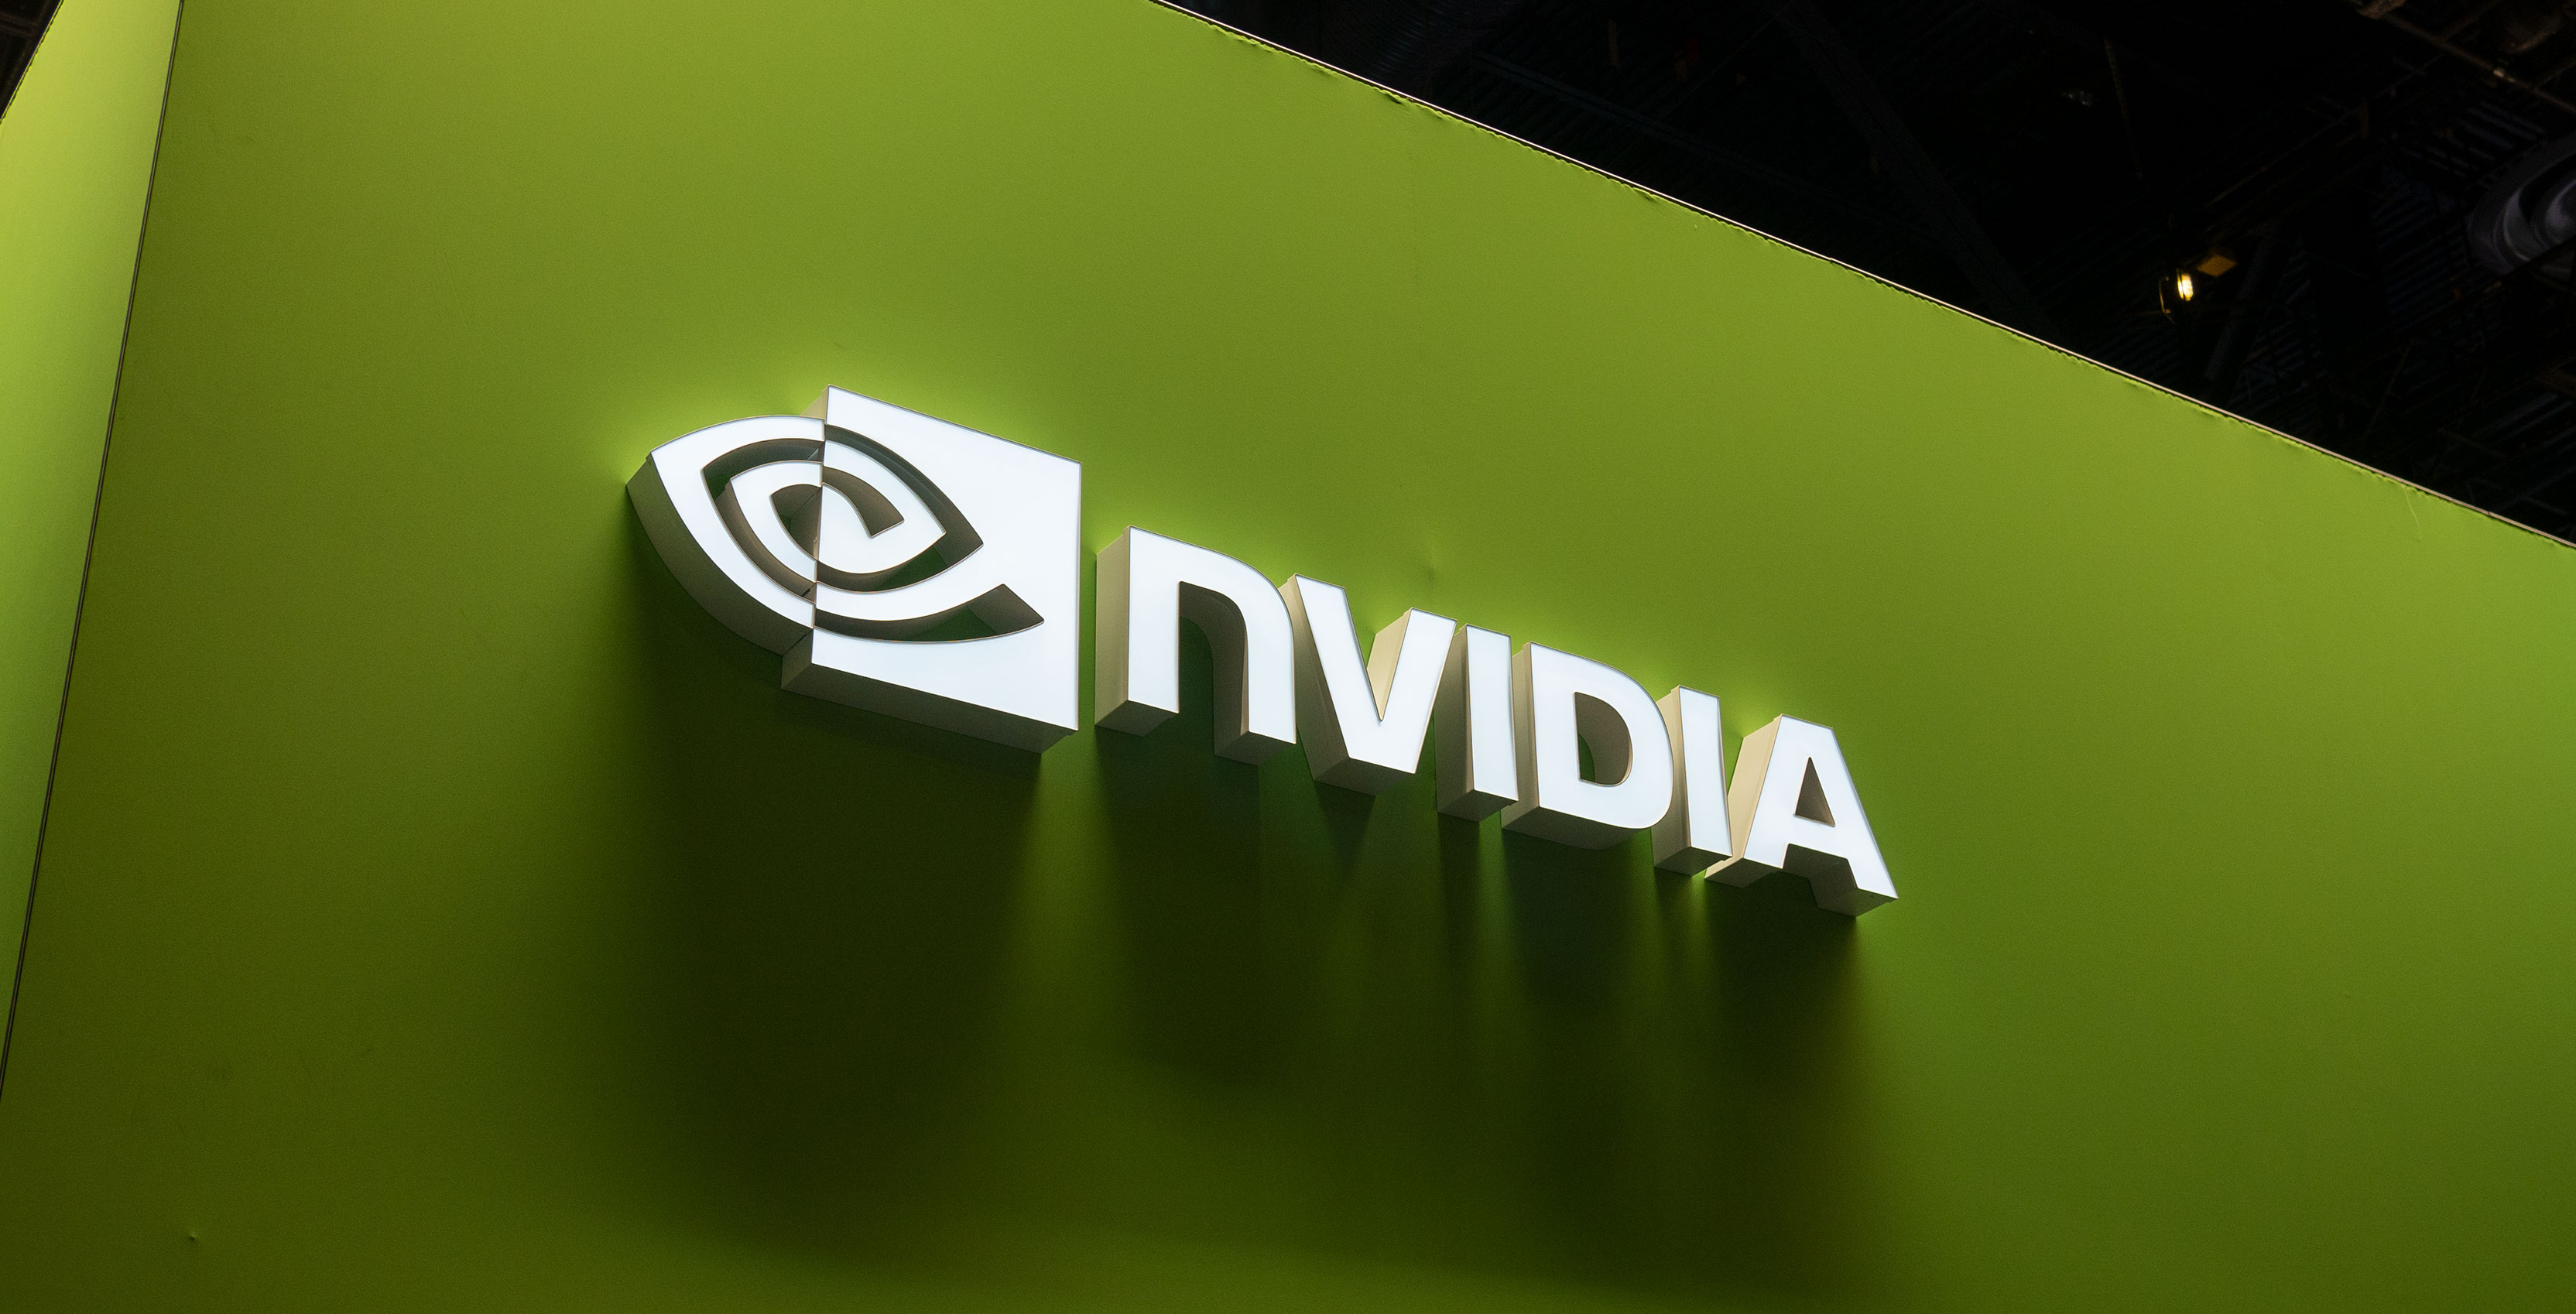 Amazon leaks 2019 Nvidia Shield TV with new remote, Dolby Vision